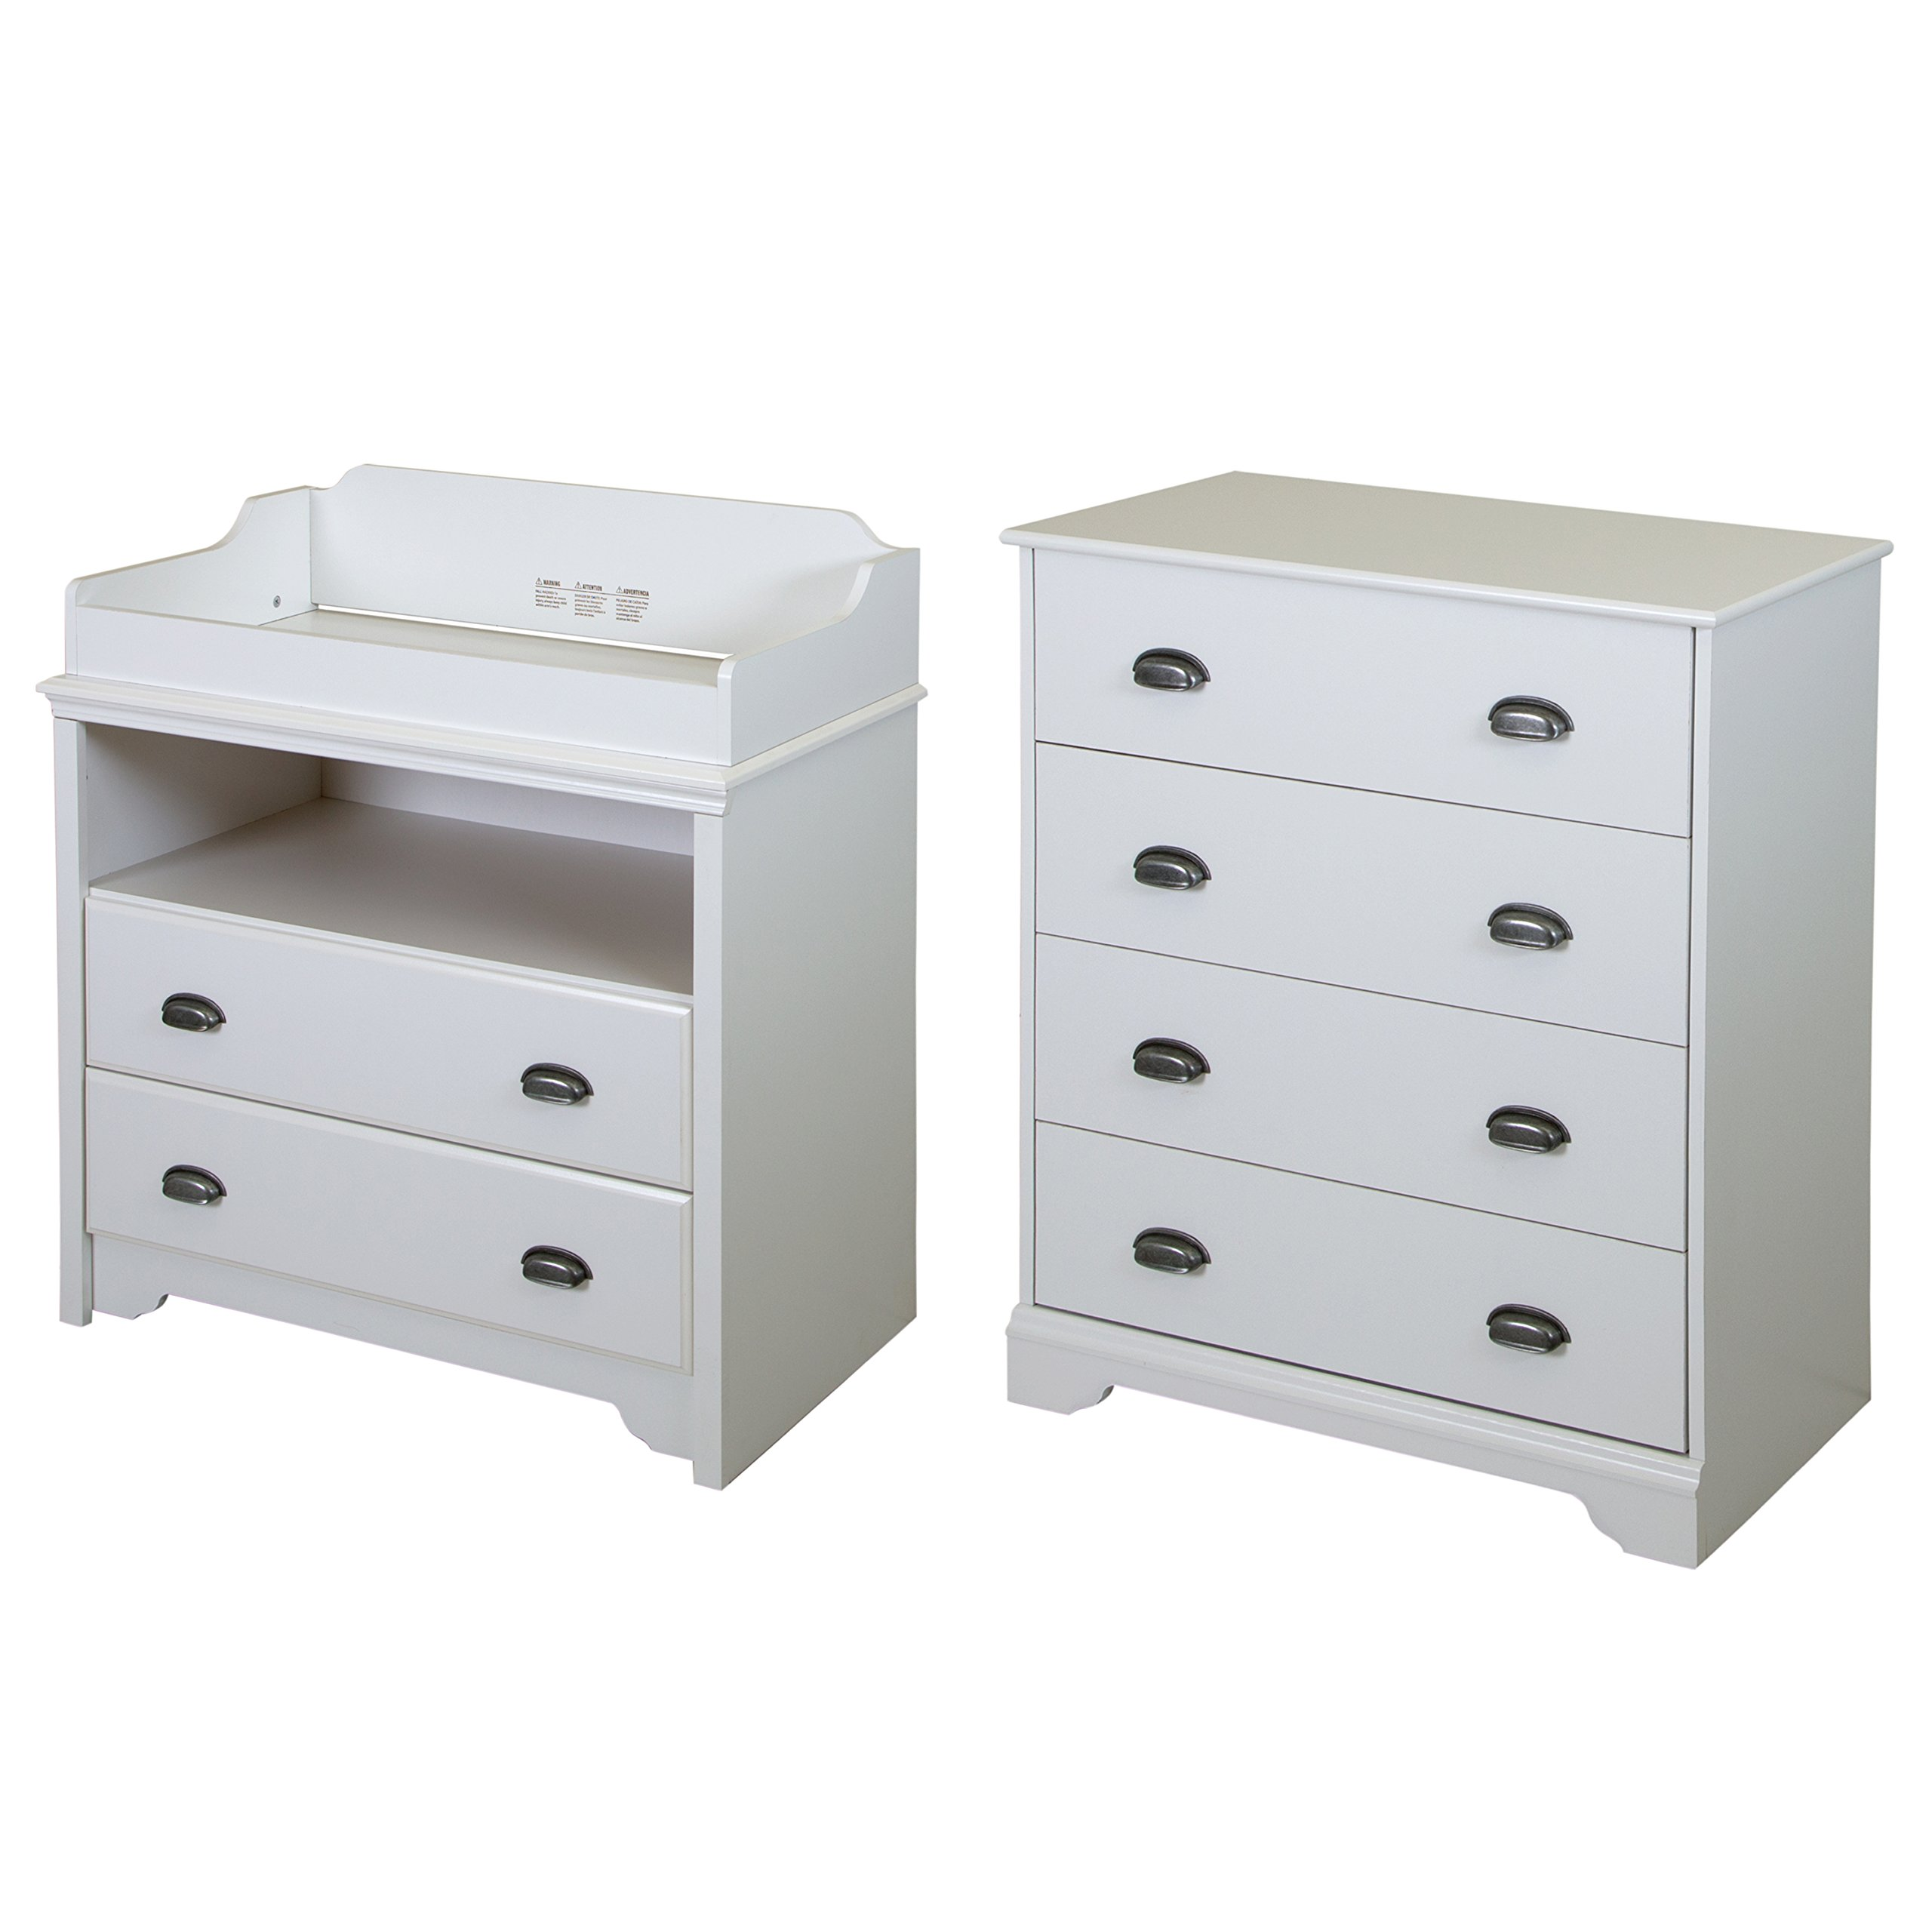 South Shore Fundy Tide Changing Table and 4-Drawer Chest, Pure White